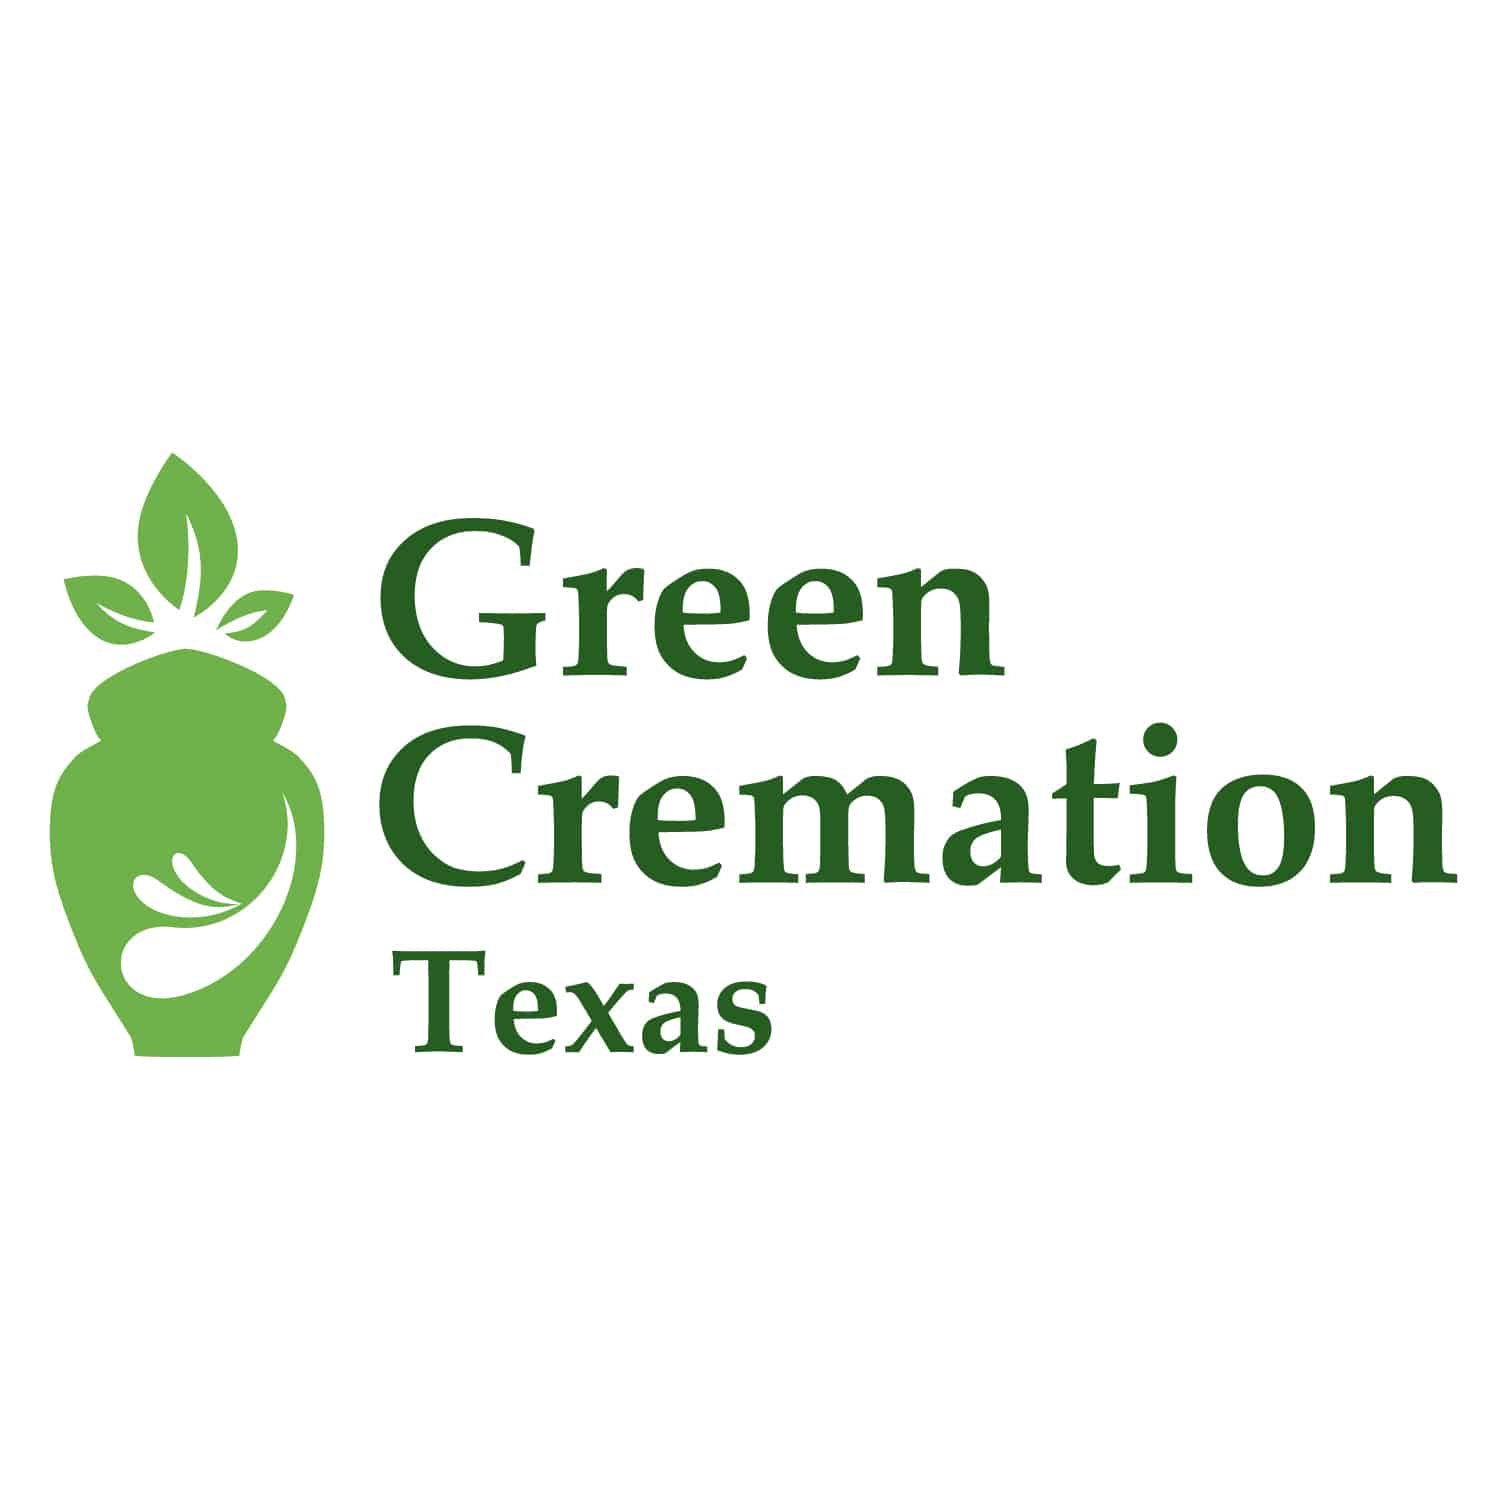 Green Cremation Texas - Austin Funeral Home Offers Environmentally Friendly Options in Austin, TX